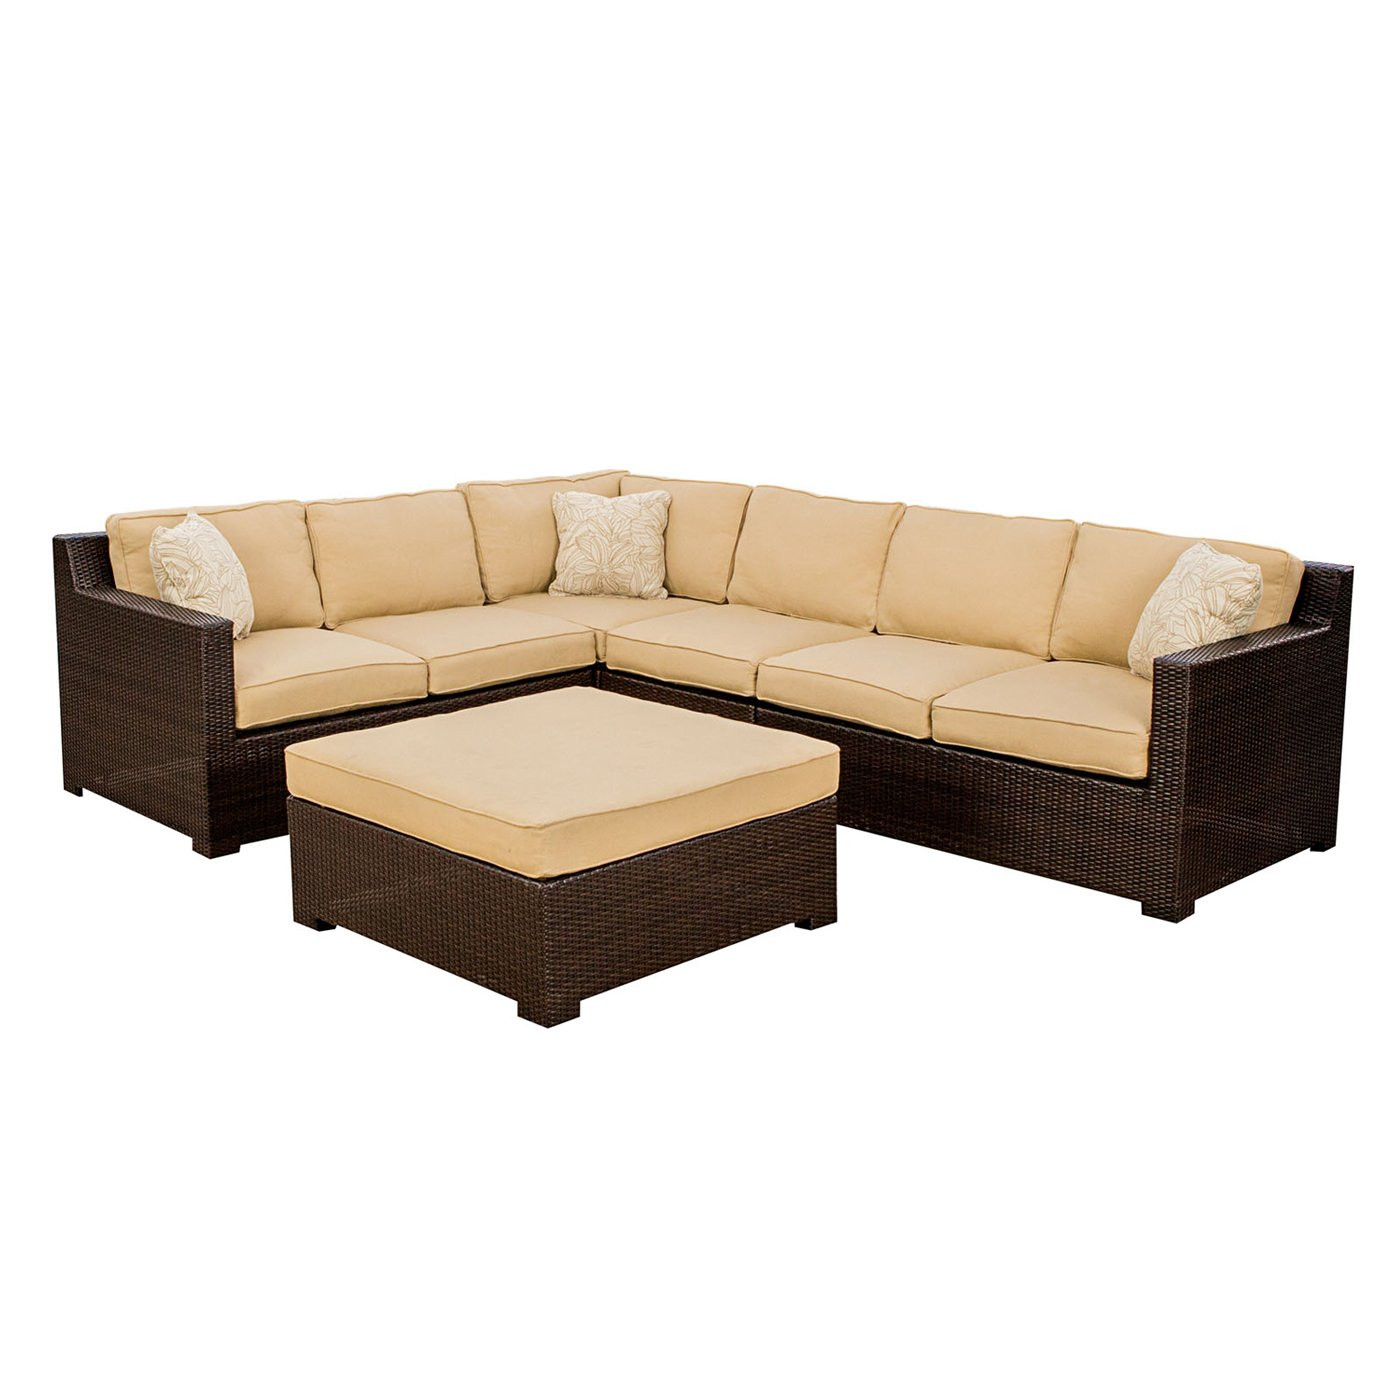 Best ideas about Hanover Outdoor Furniture . Save or Pin Hanover Outdoor Furniture METRO5PC Metropolitan 5 Piece Now.